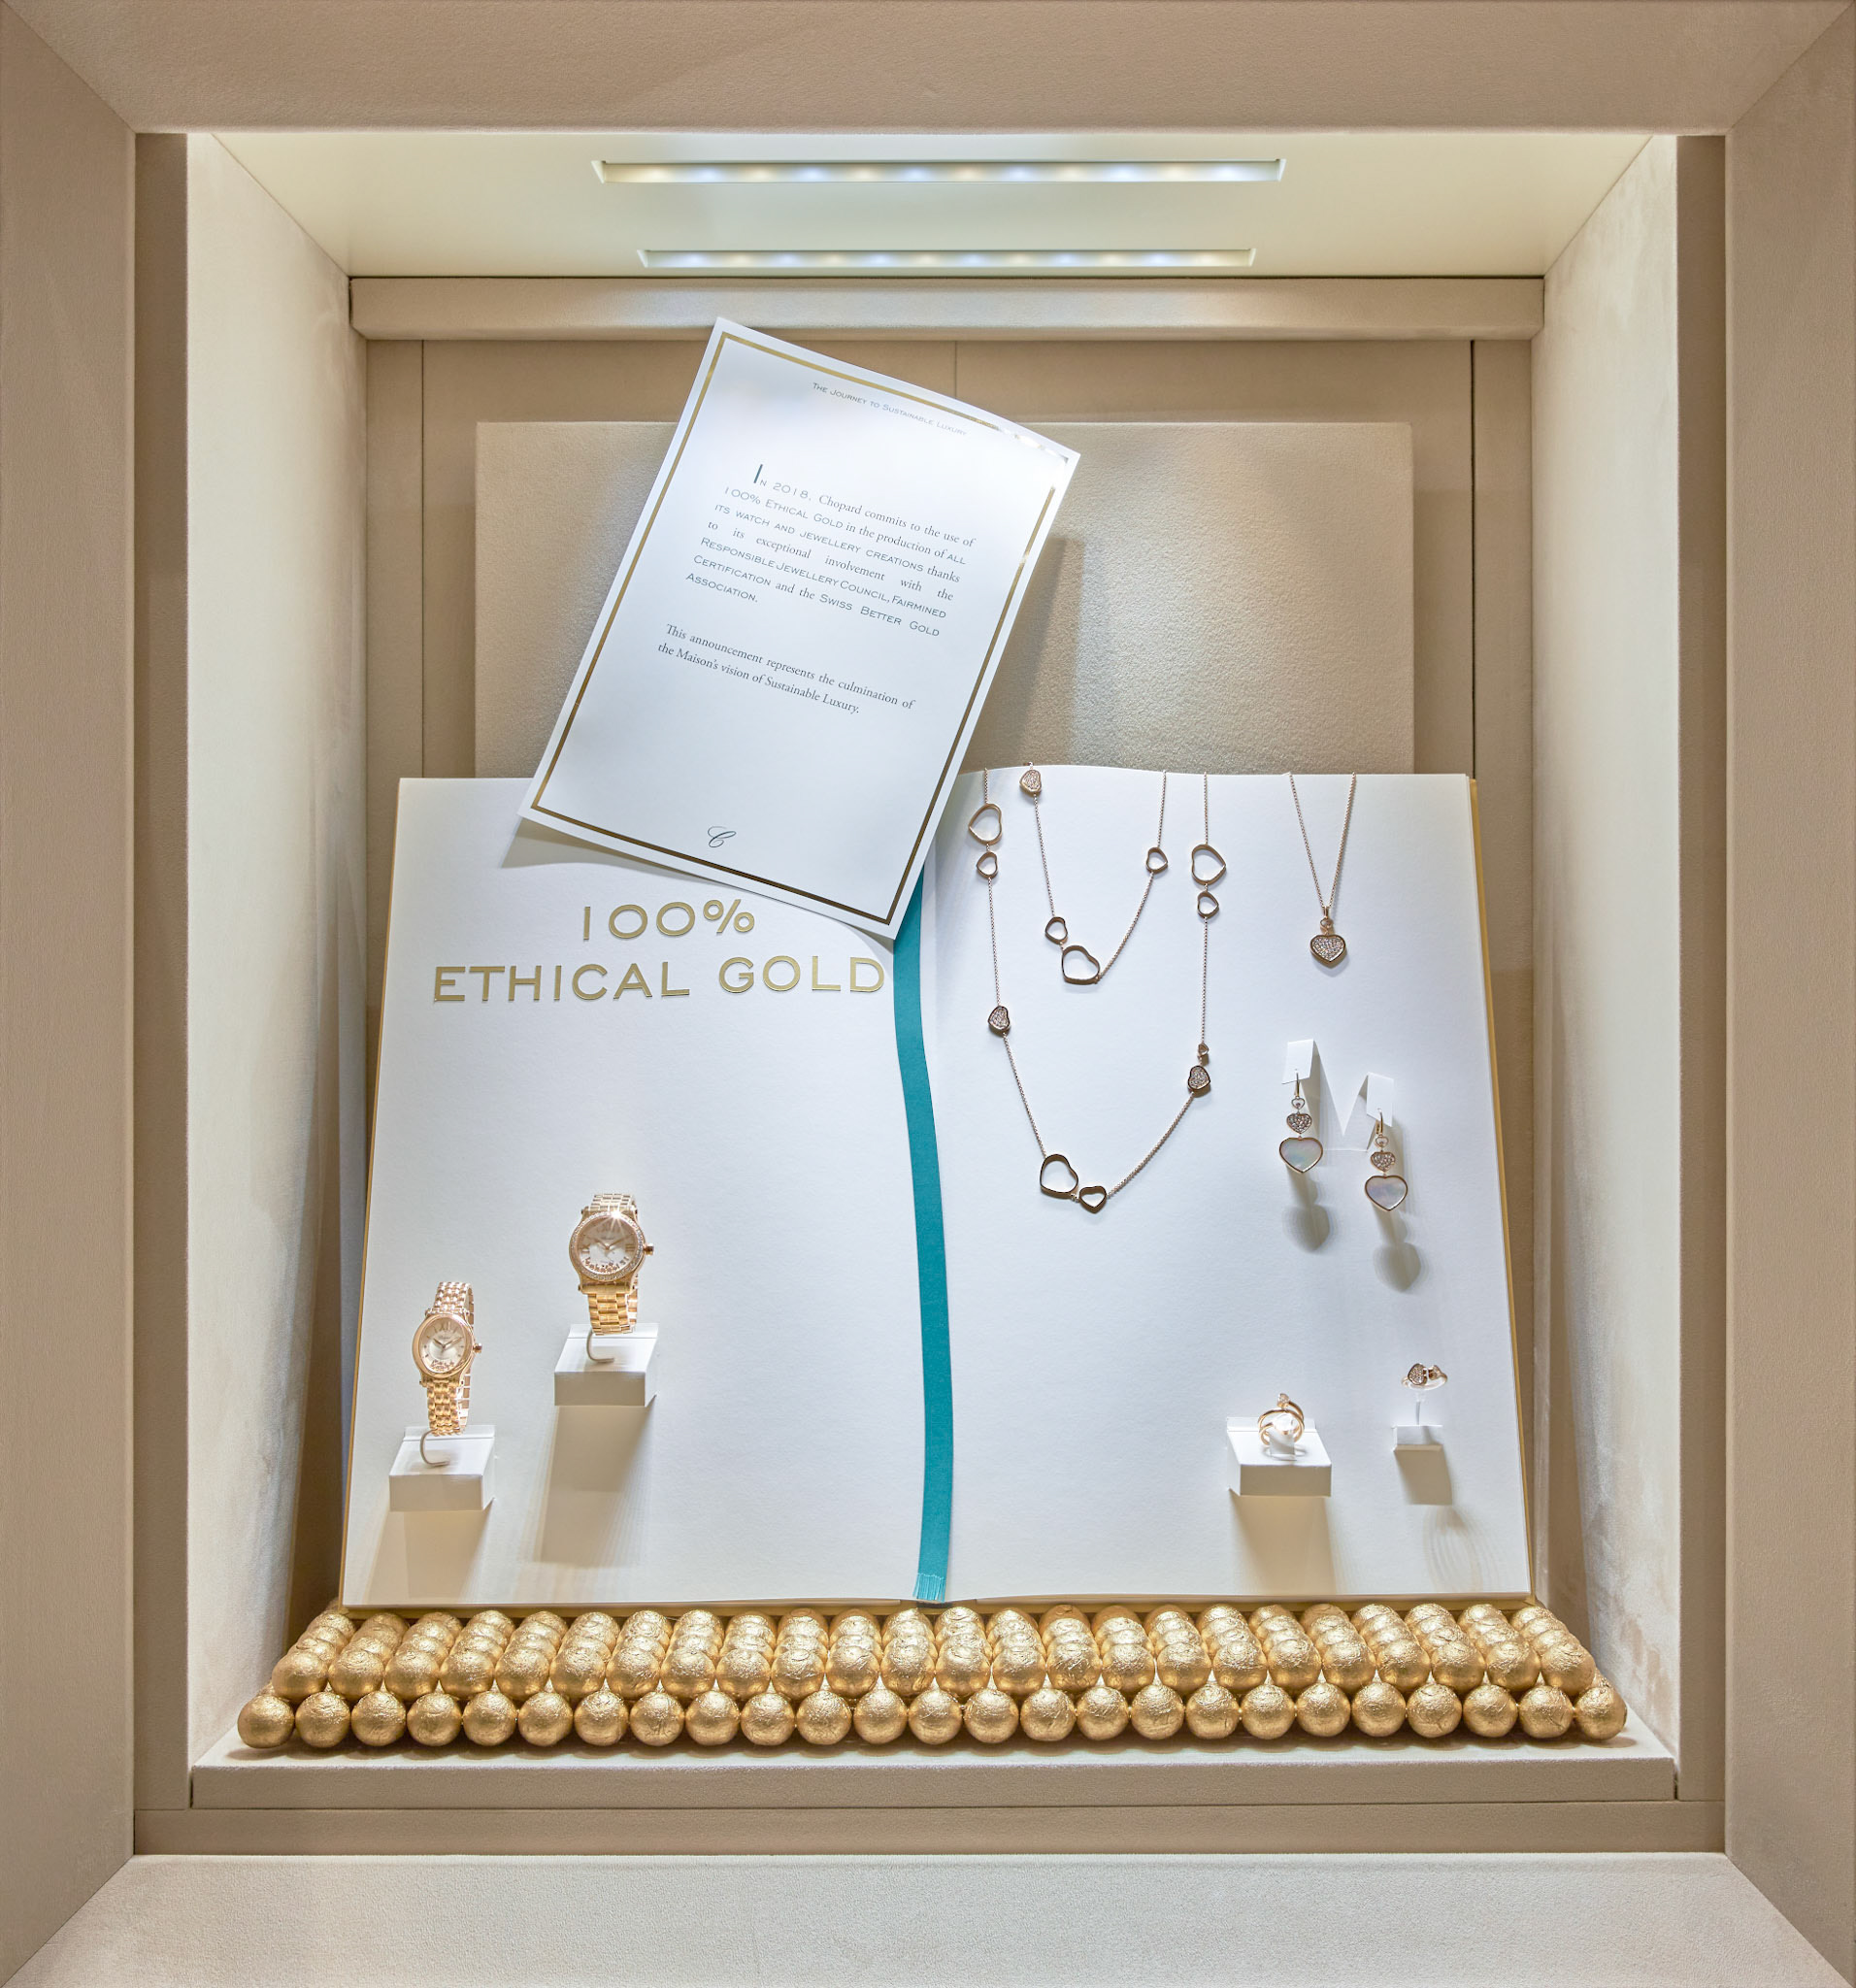 Retail Photography Chopard window with 100% ethicall gold with watches and display